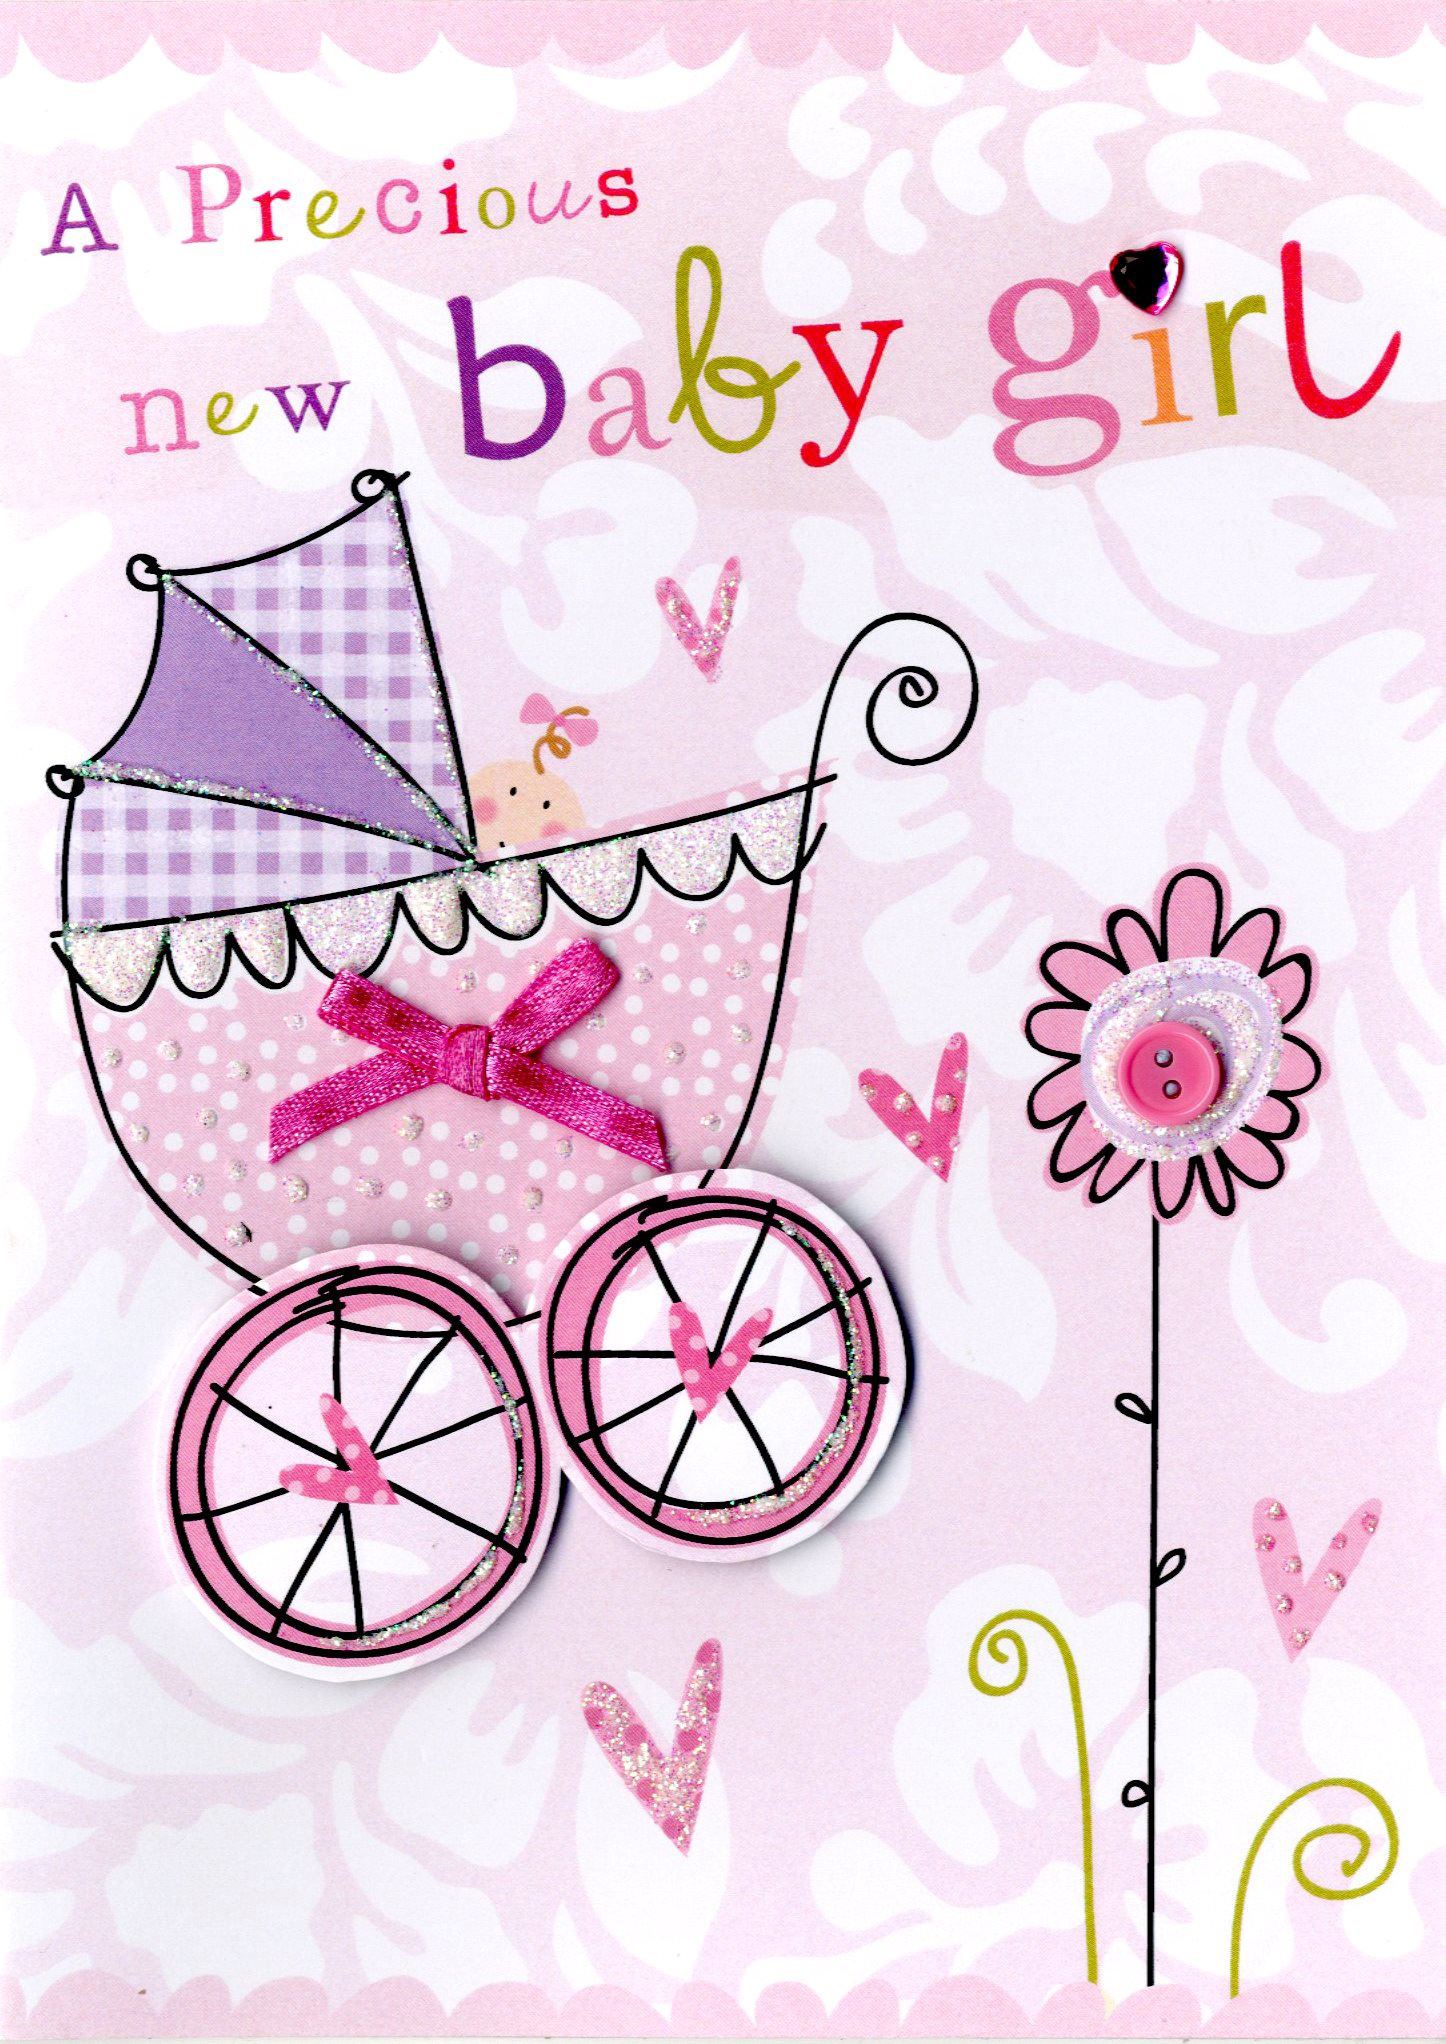 New baby girl greeting card cards love kates new baby girl greeting card kristyandbryce Images